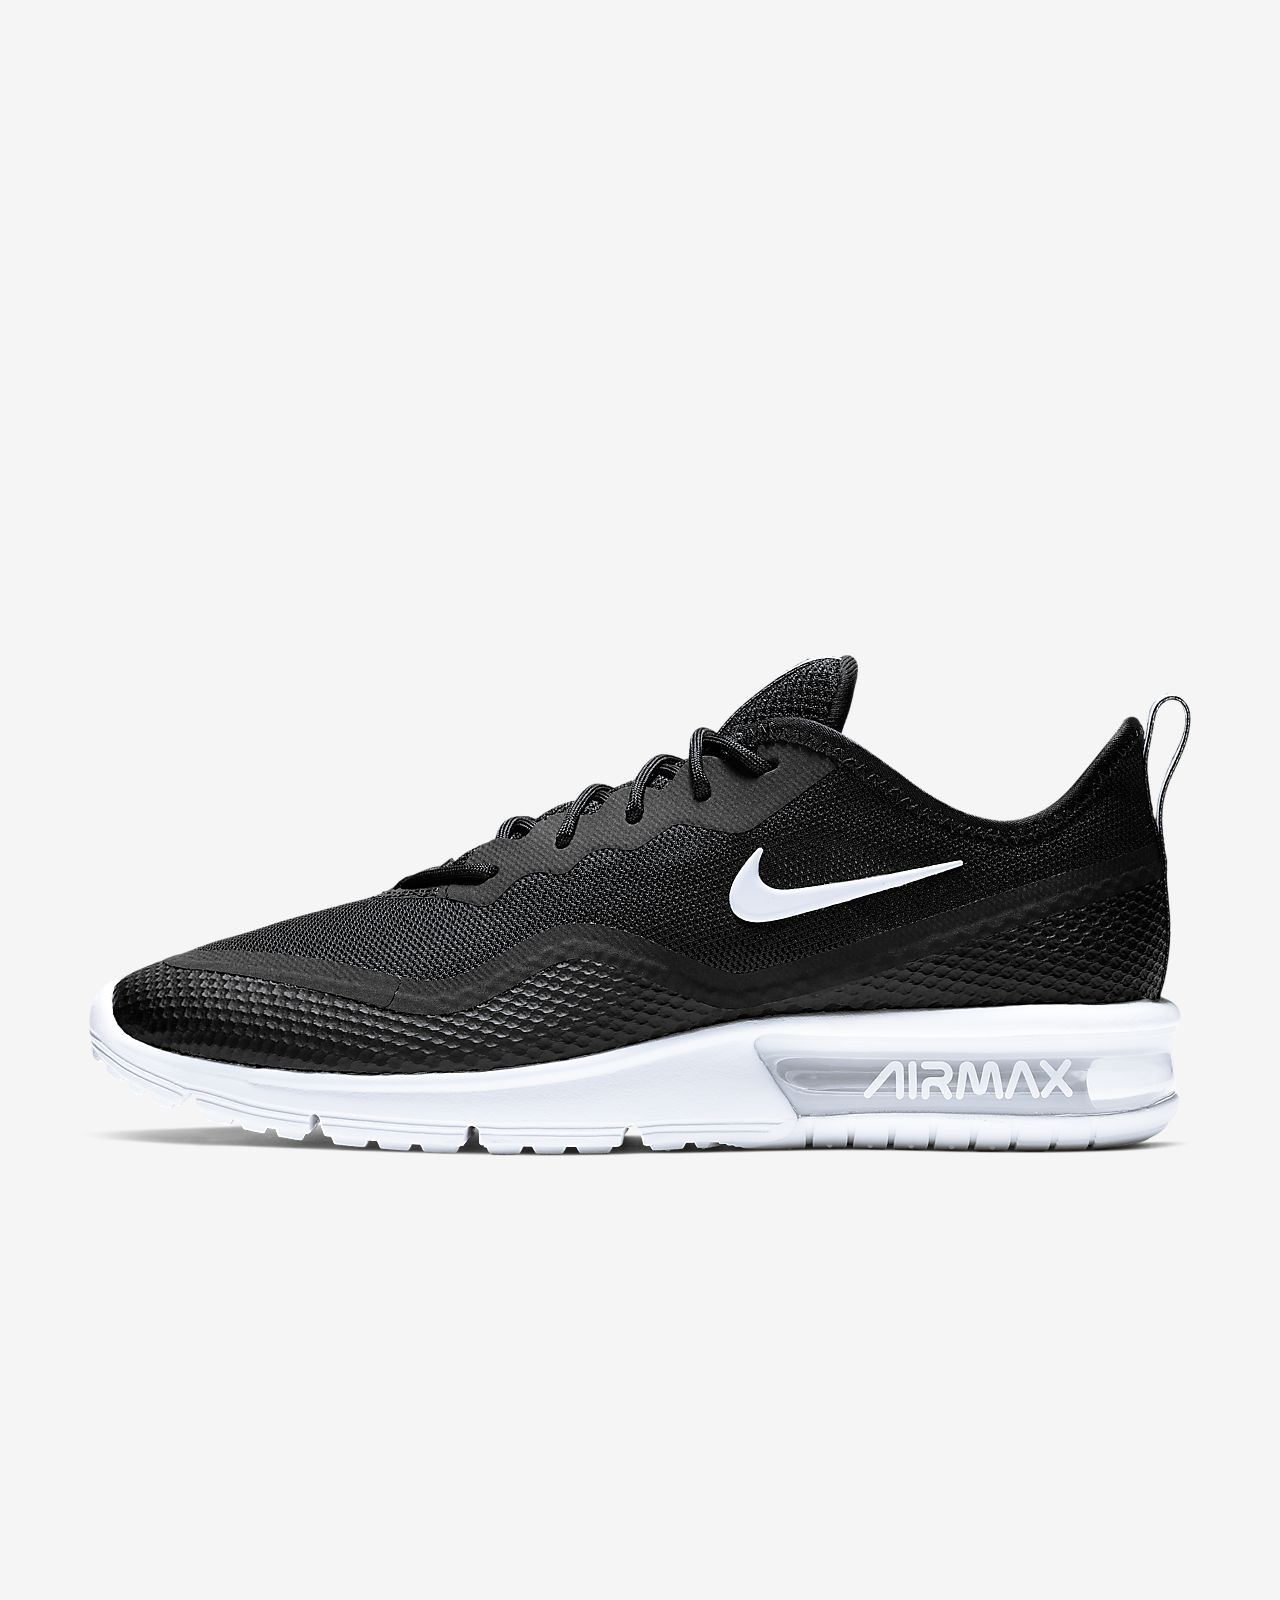 Air Max Sequent 4.5 SE